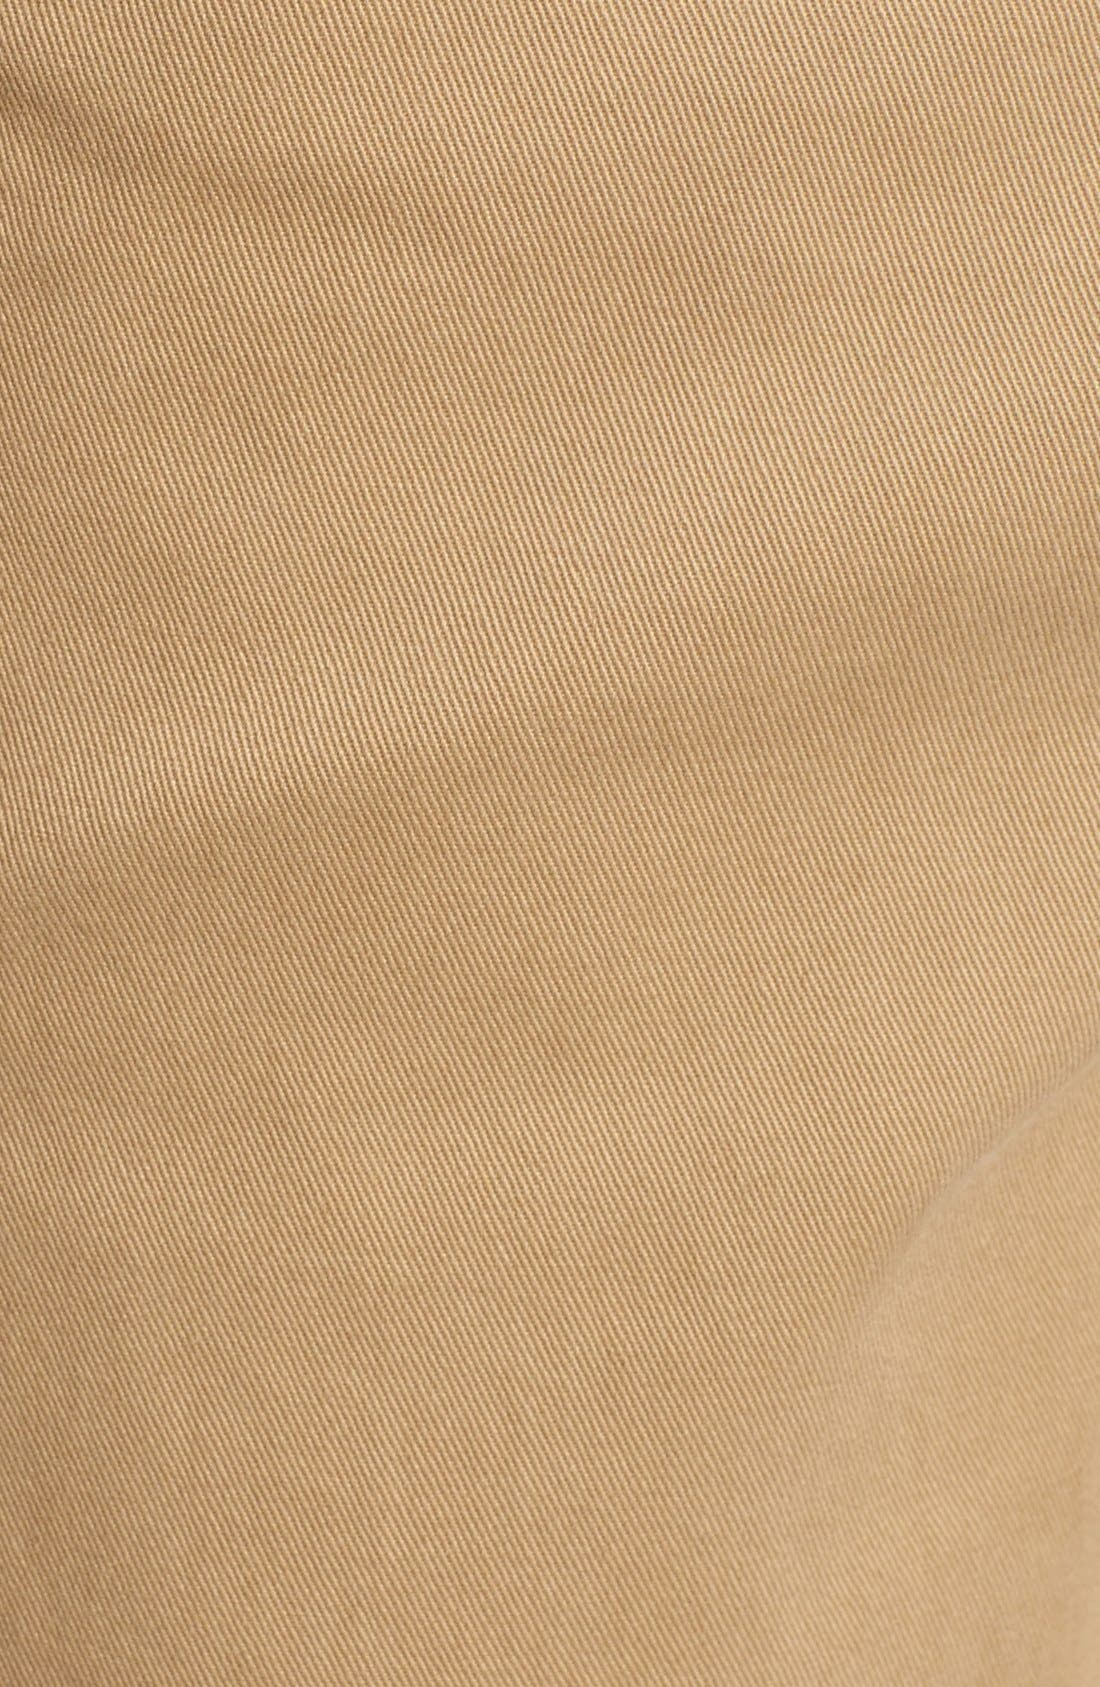 'Sahara' Trim Fit Vintage Washed Twill Chinos,                             Alternate thumbnail 33, color,